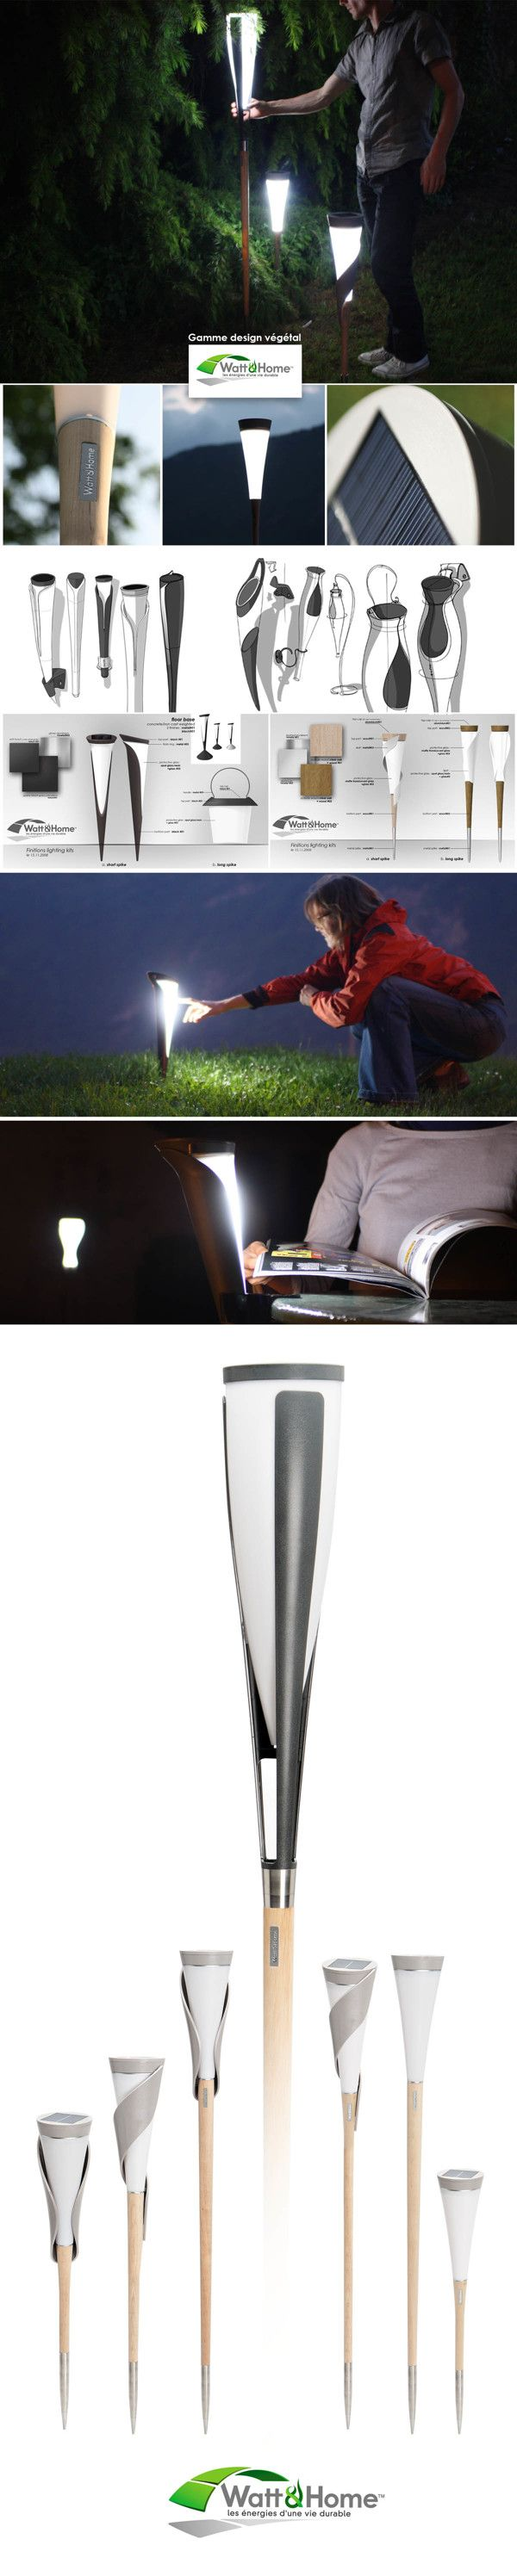 SOLAR LIGHTINGS by IOTA design, via Behance